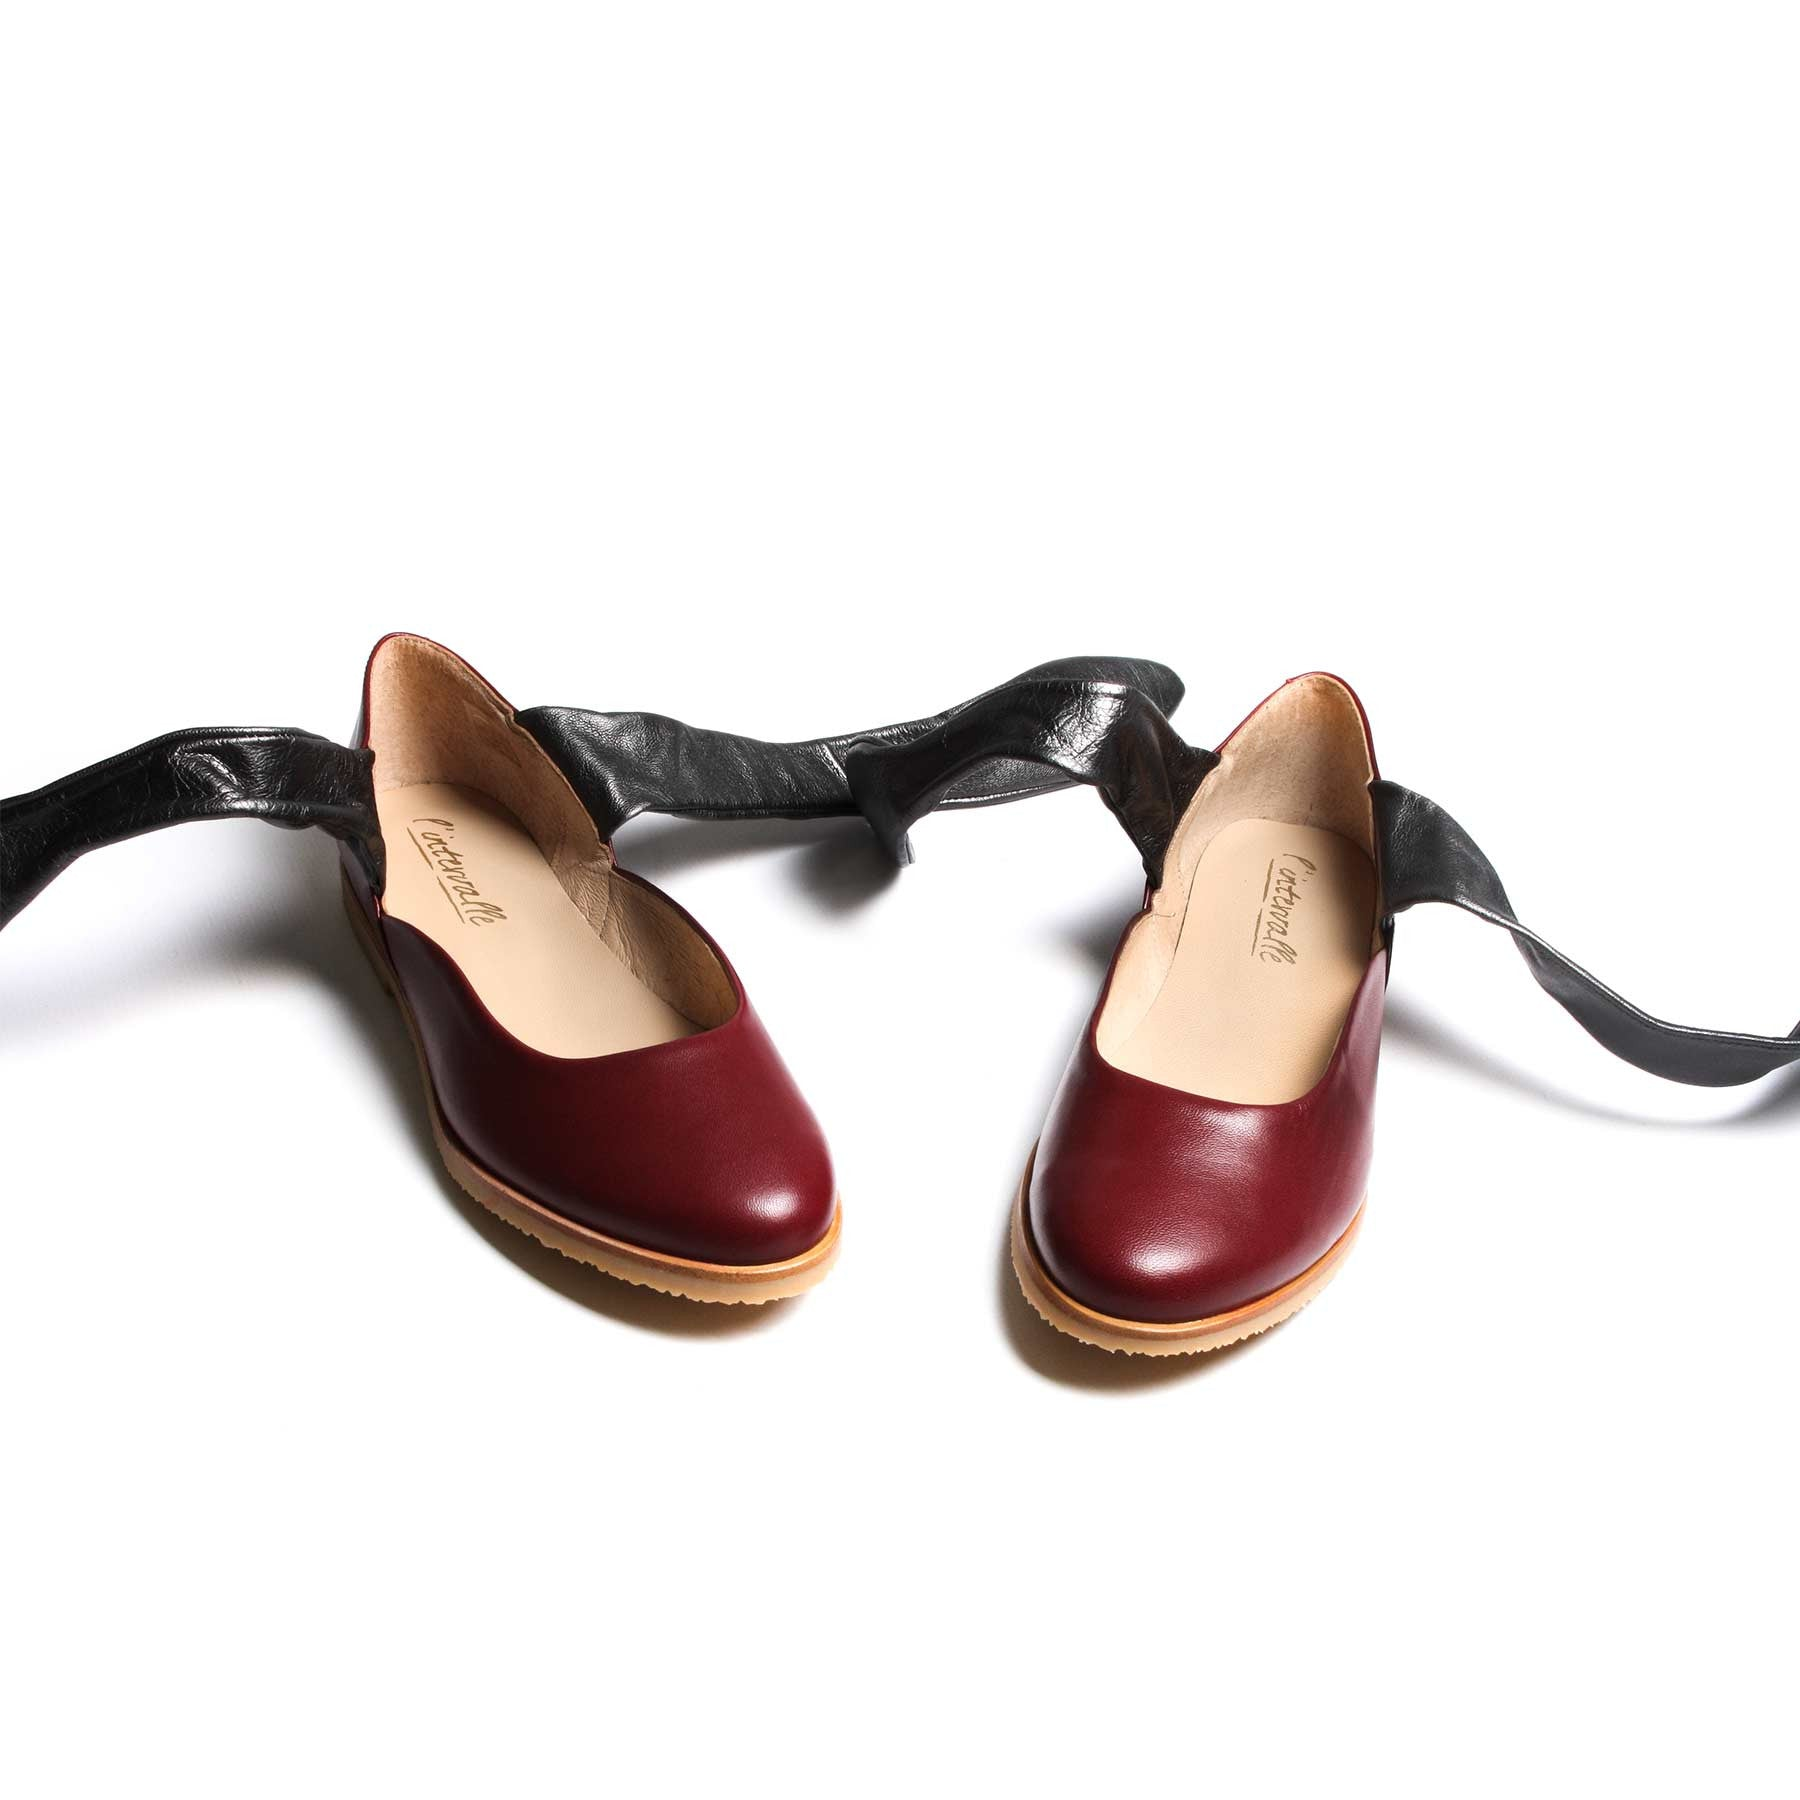 Shoes, Dacre Bordeau Leather - Lintervalle shoes for woman